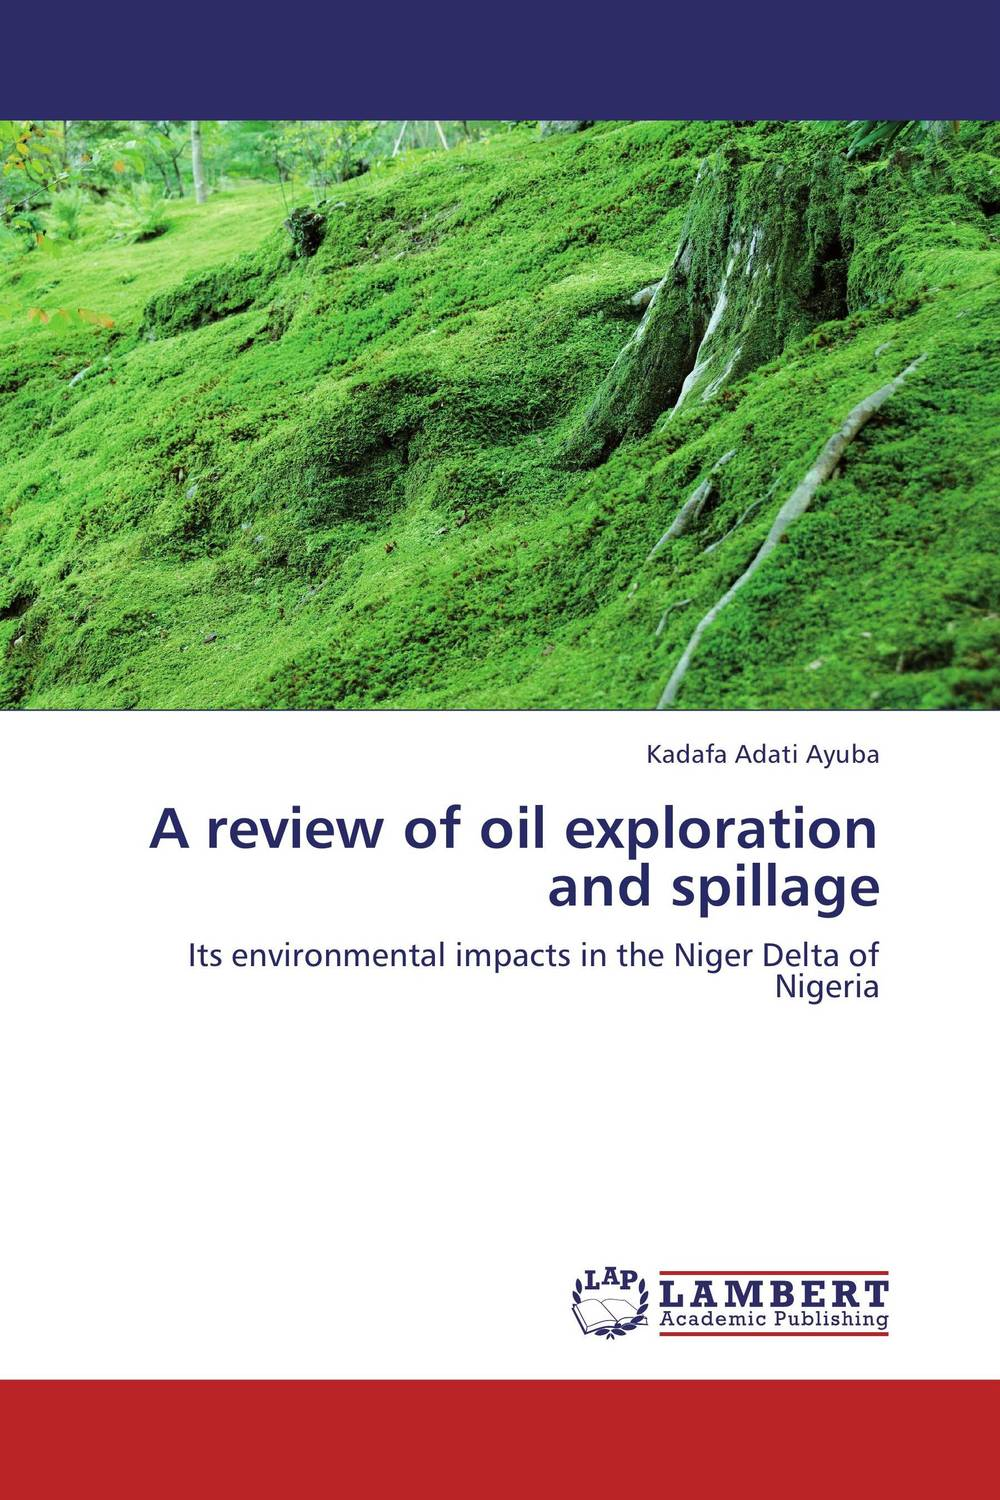 A review of oil exploration and spillage dearomatization of crude oil